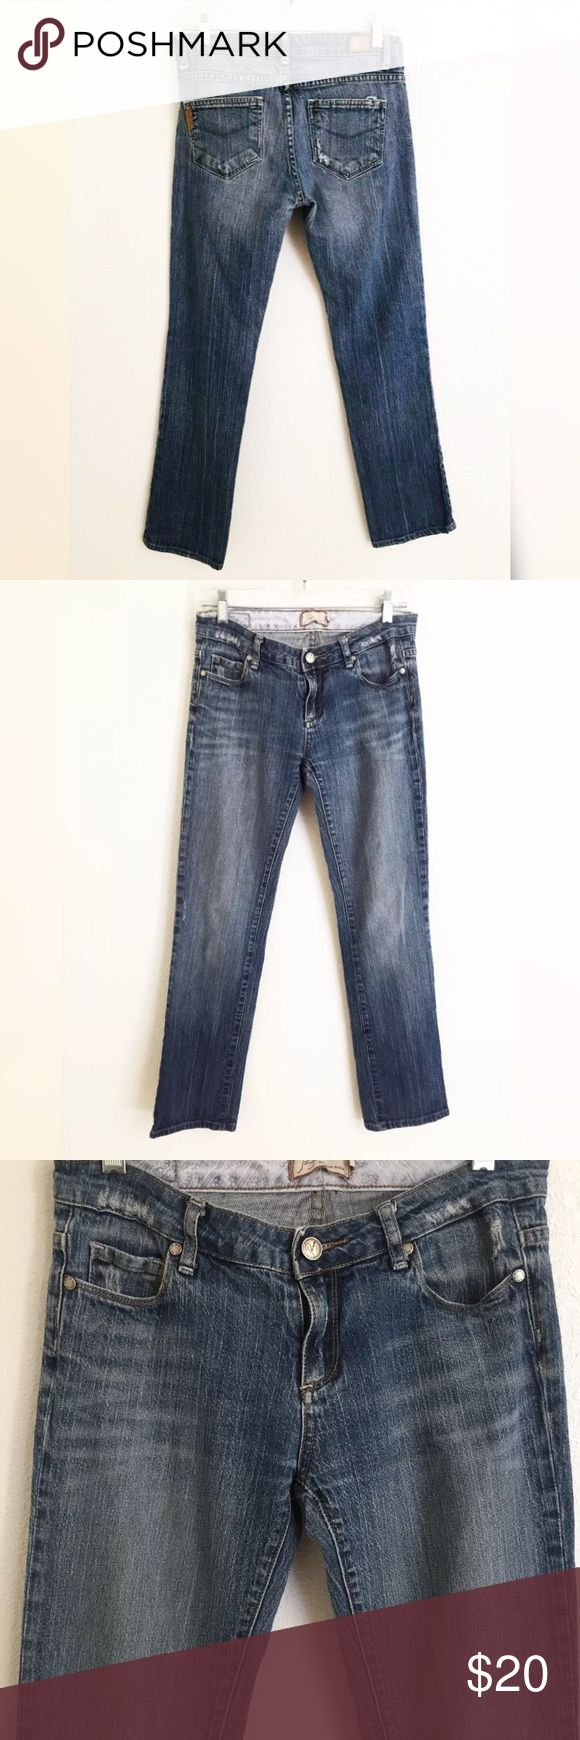 Paige Premium Denim Sz 27 x  30 Melrose Jeans Waist is approximately 28 inches. Rise is approximately 8 inches. Inseam is 30 inches Nice preowned condition   Comes from a smoke free environment. Paige Jeans Jeans Straight Leg